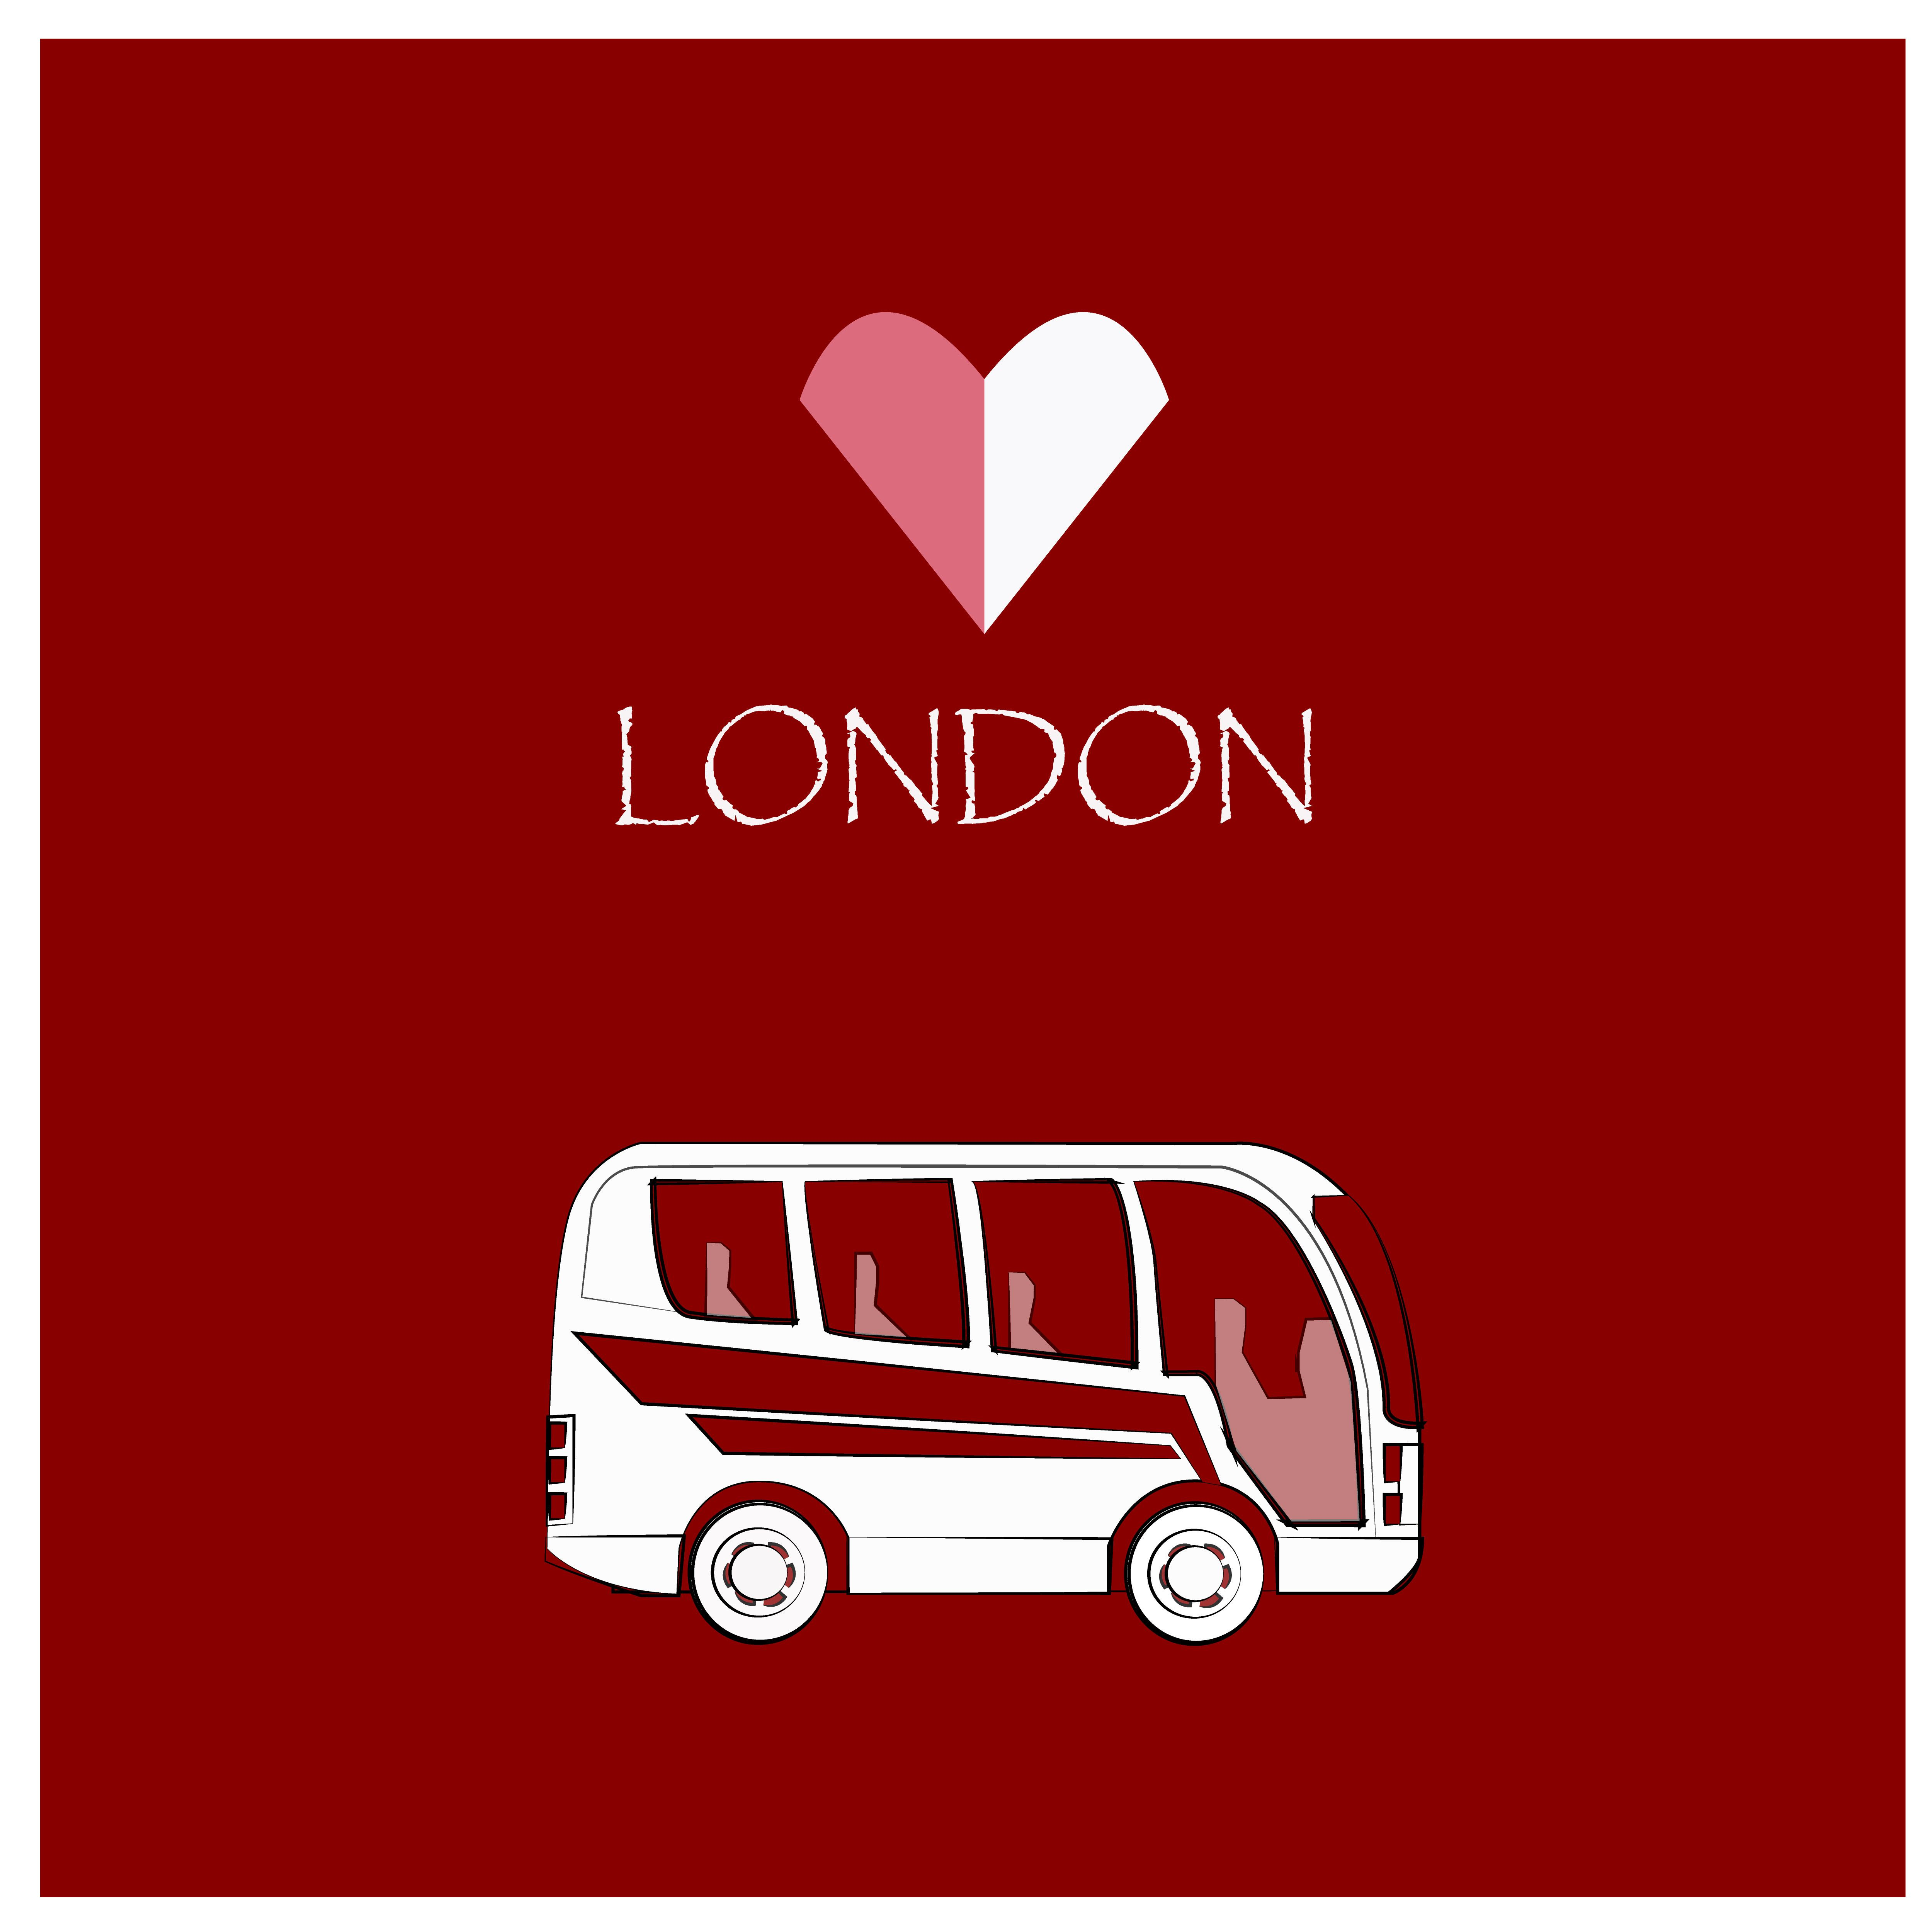 Bus London Vector Isolated Illustration Red Background City Symbol Design Travel Retro Cartoon Transport Tourism Transportatio London Vector Bus